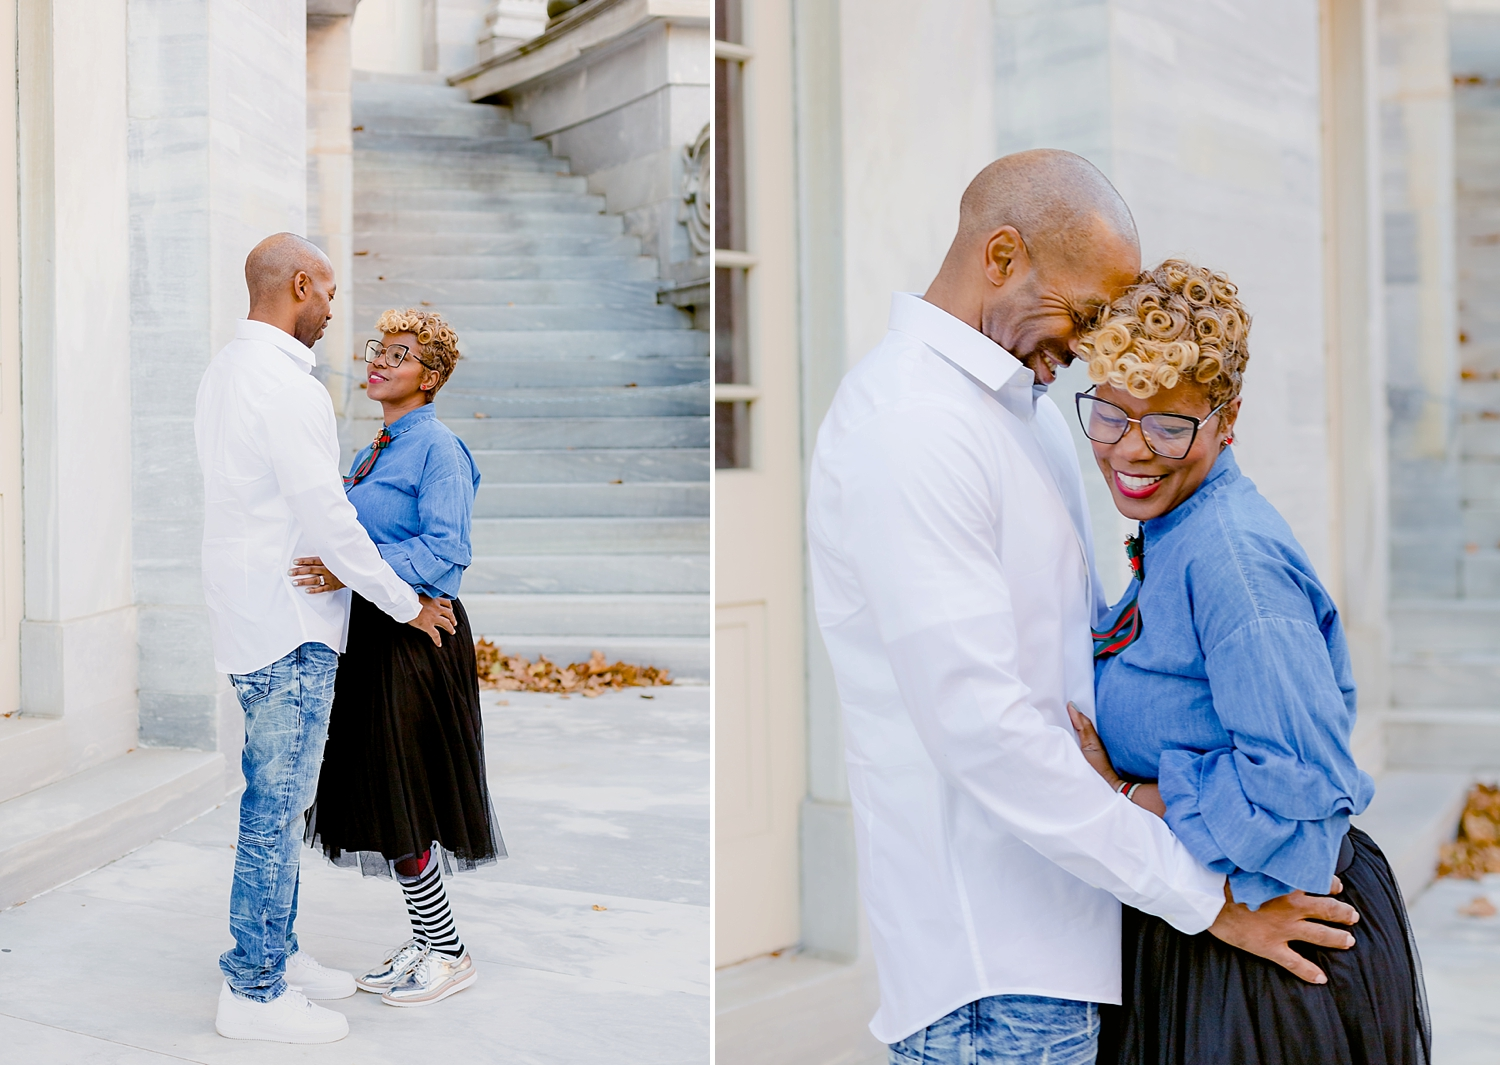 couple embracing in a romantic hug for photo